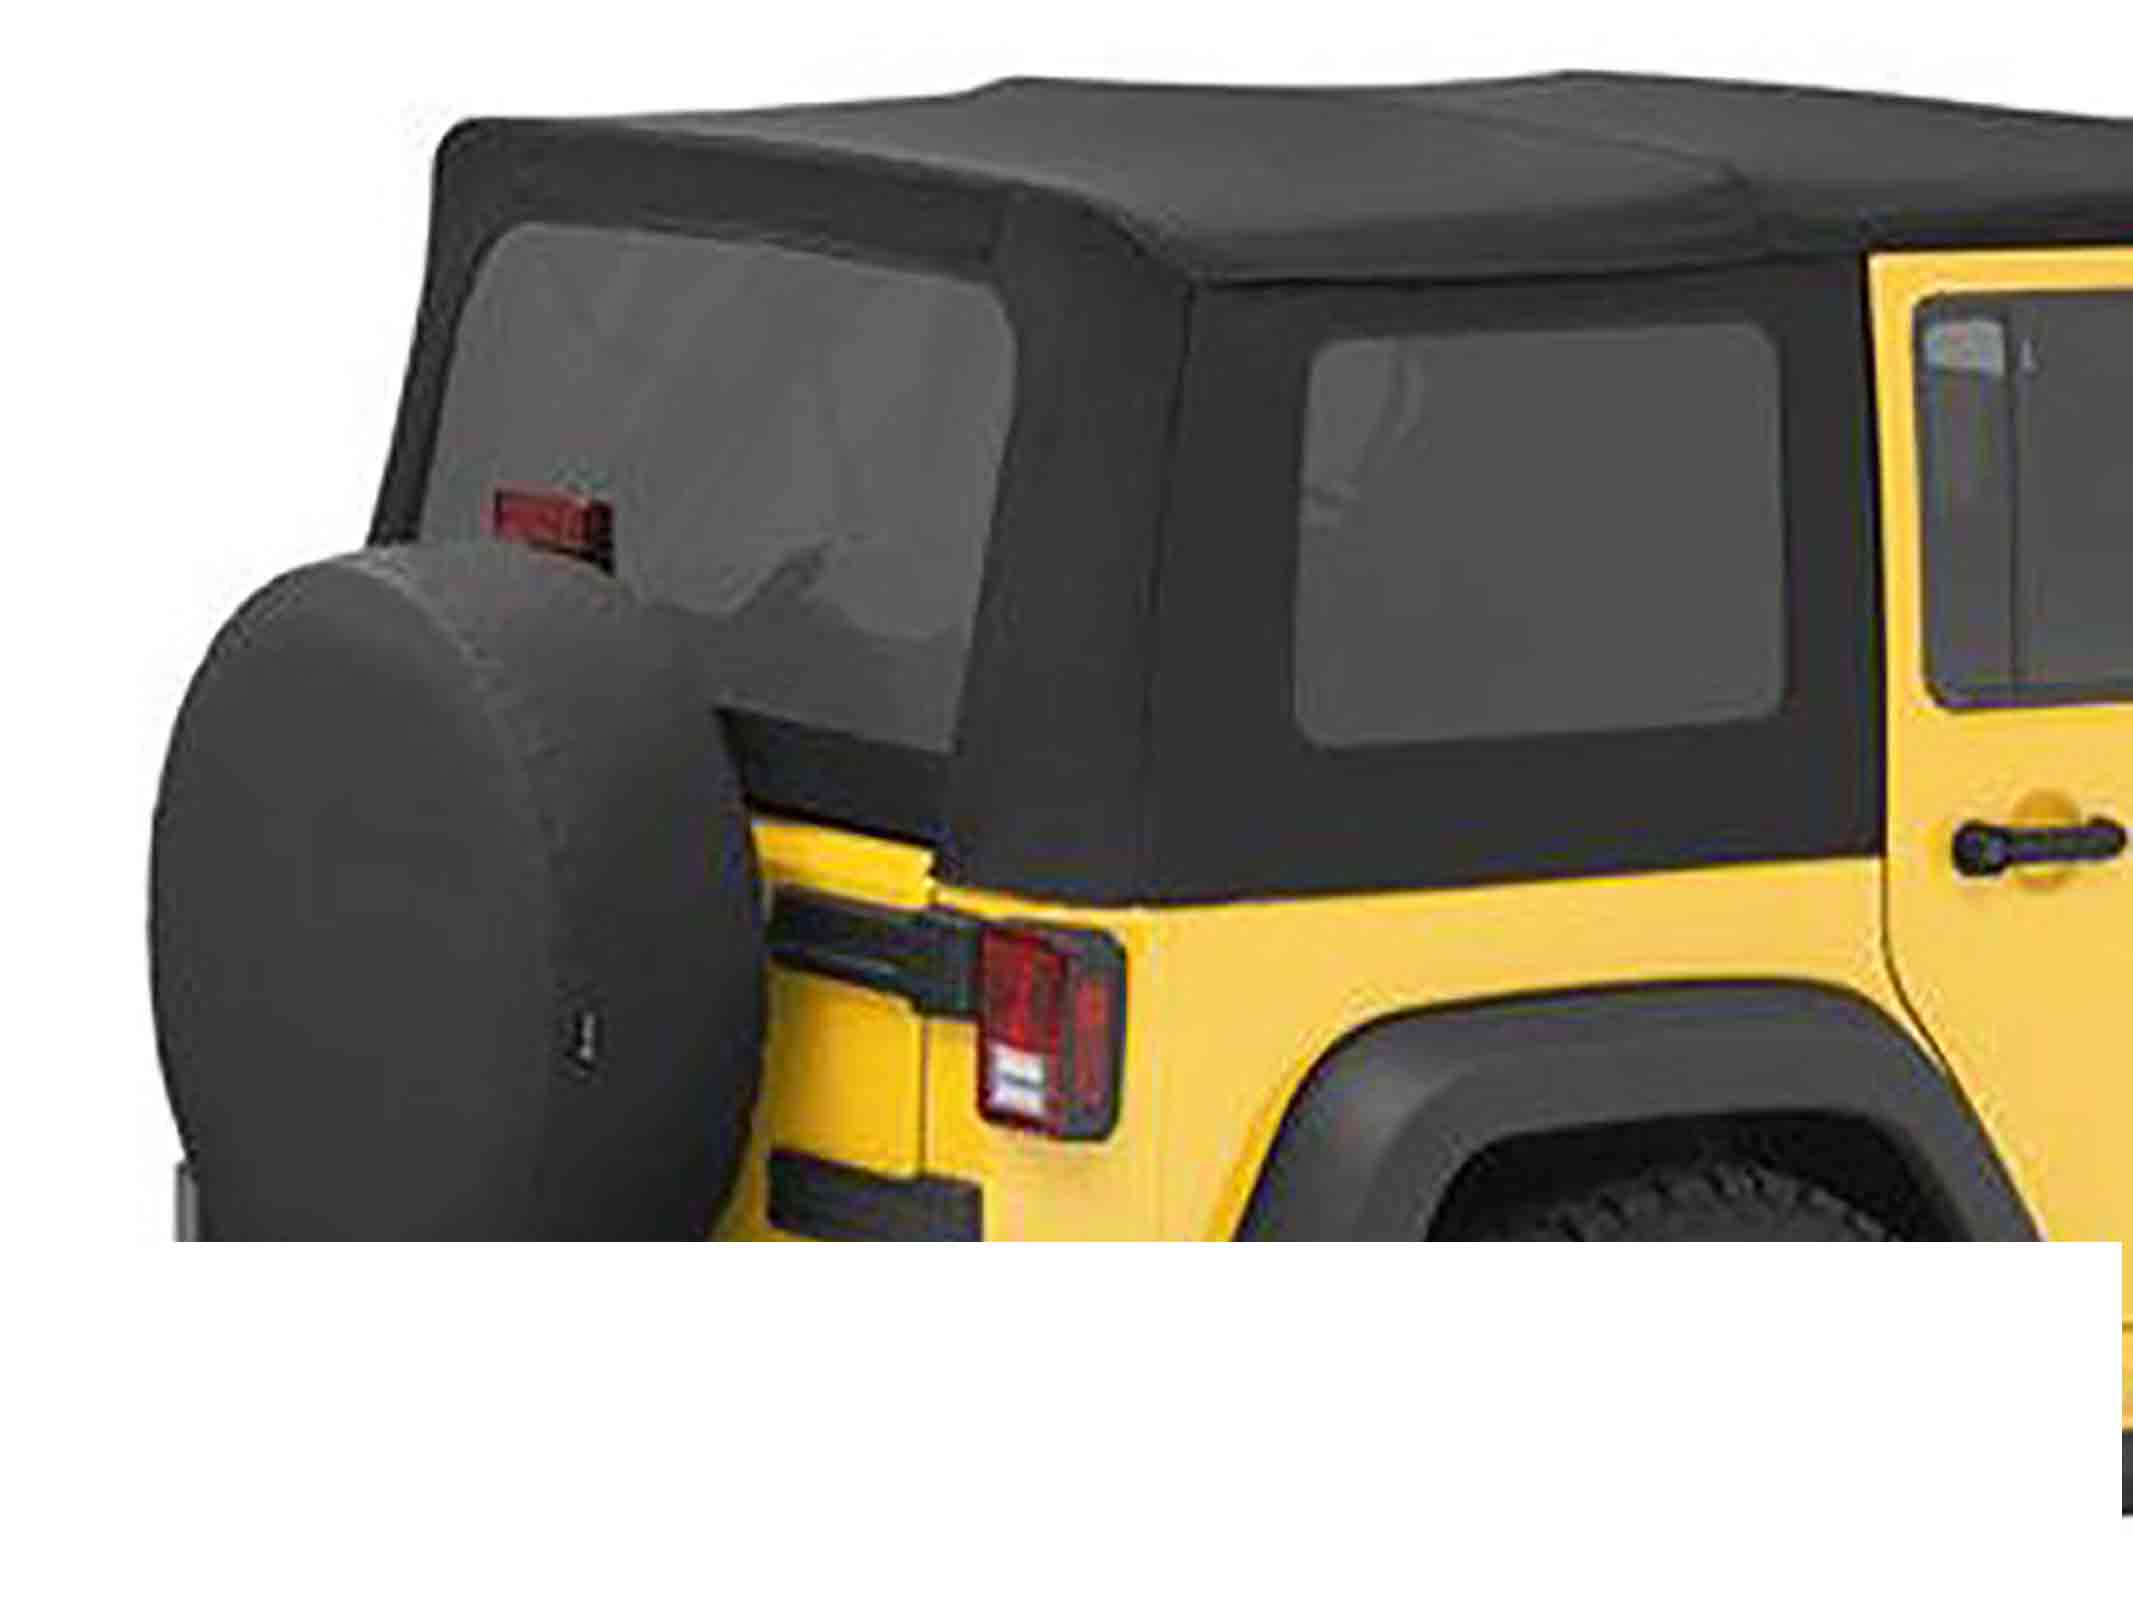 Vetri scuri wrangler jk 11 18 2 porte adatto per softtop soft top capottina originale ricambi jeep